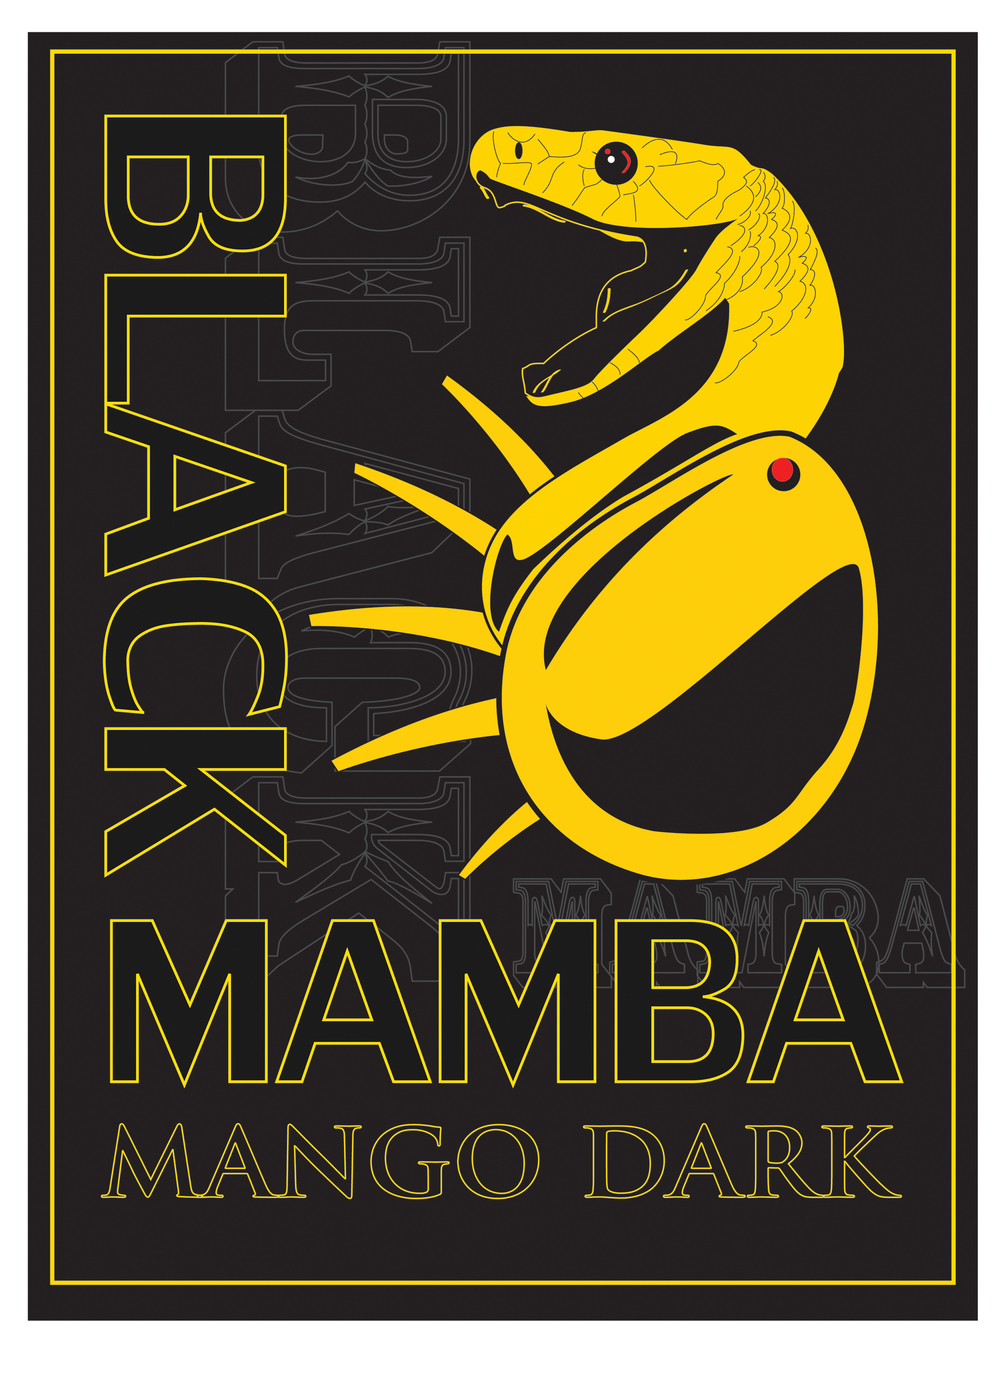 """Black Mamba - Mango Dark"" , concept - for non-profit"